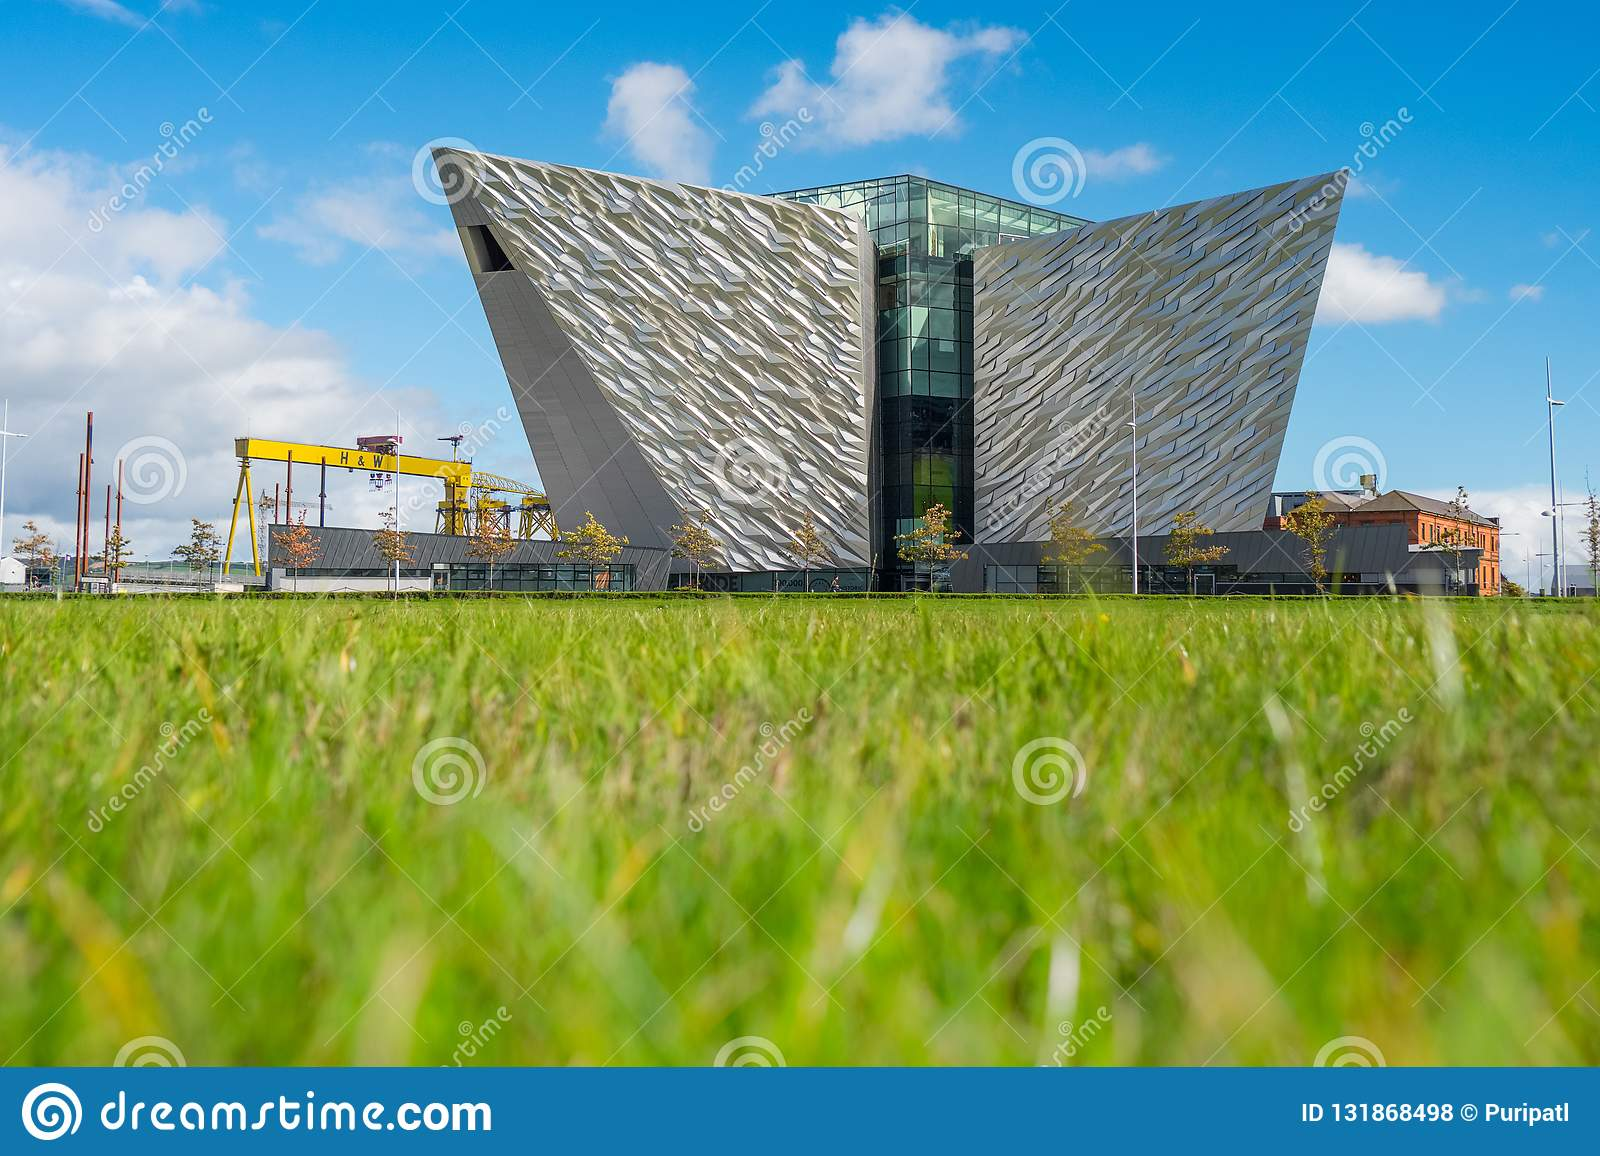 Titanic Belfast with Goliath and Samson Cranes on the background, Northern Ireland